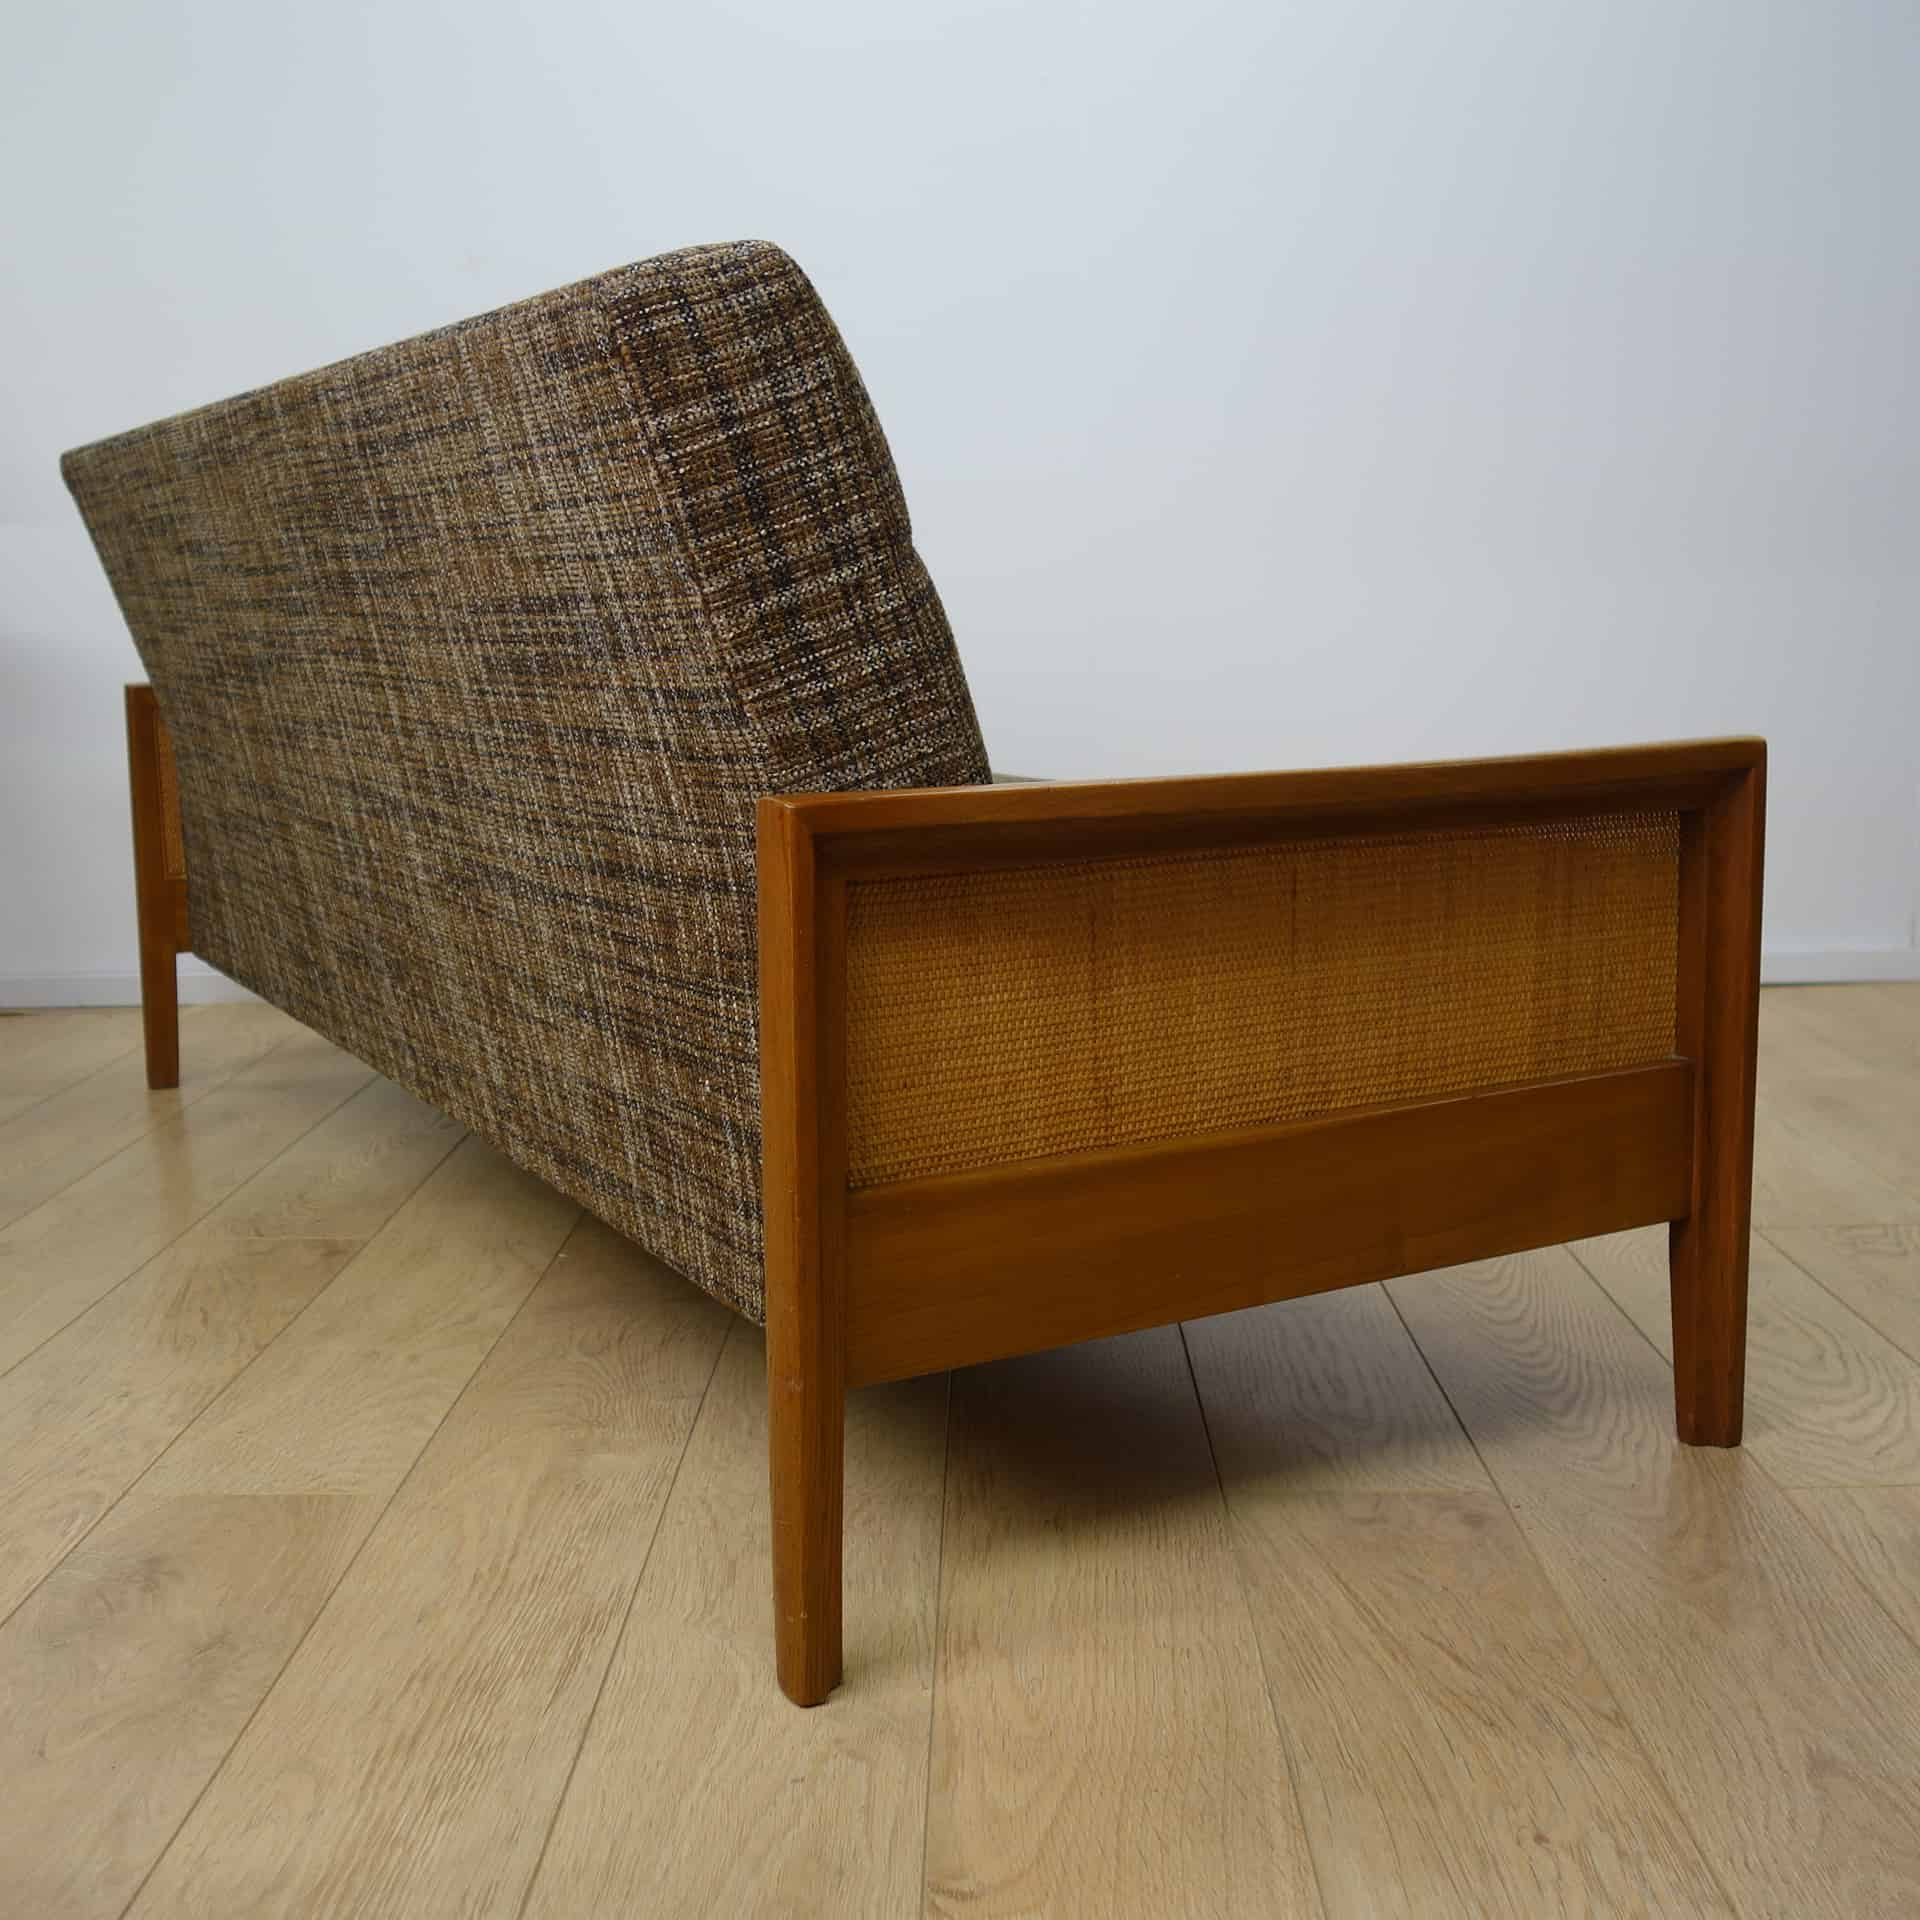 cane sofa bed dillards sleeper 1960s with rattan sides mark parrish mid